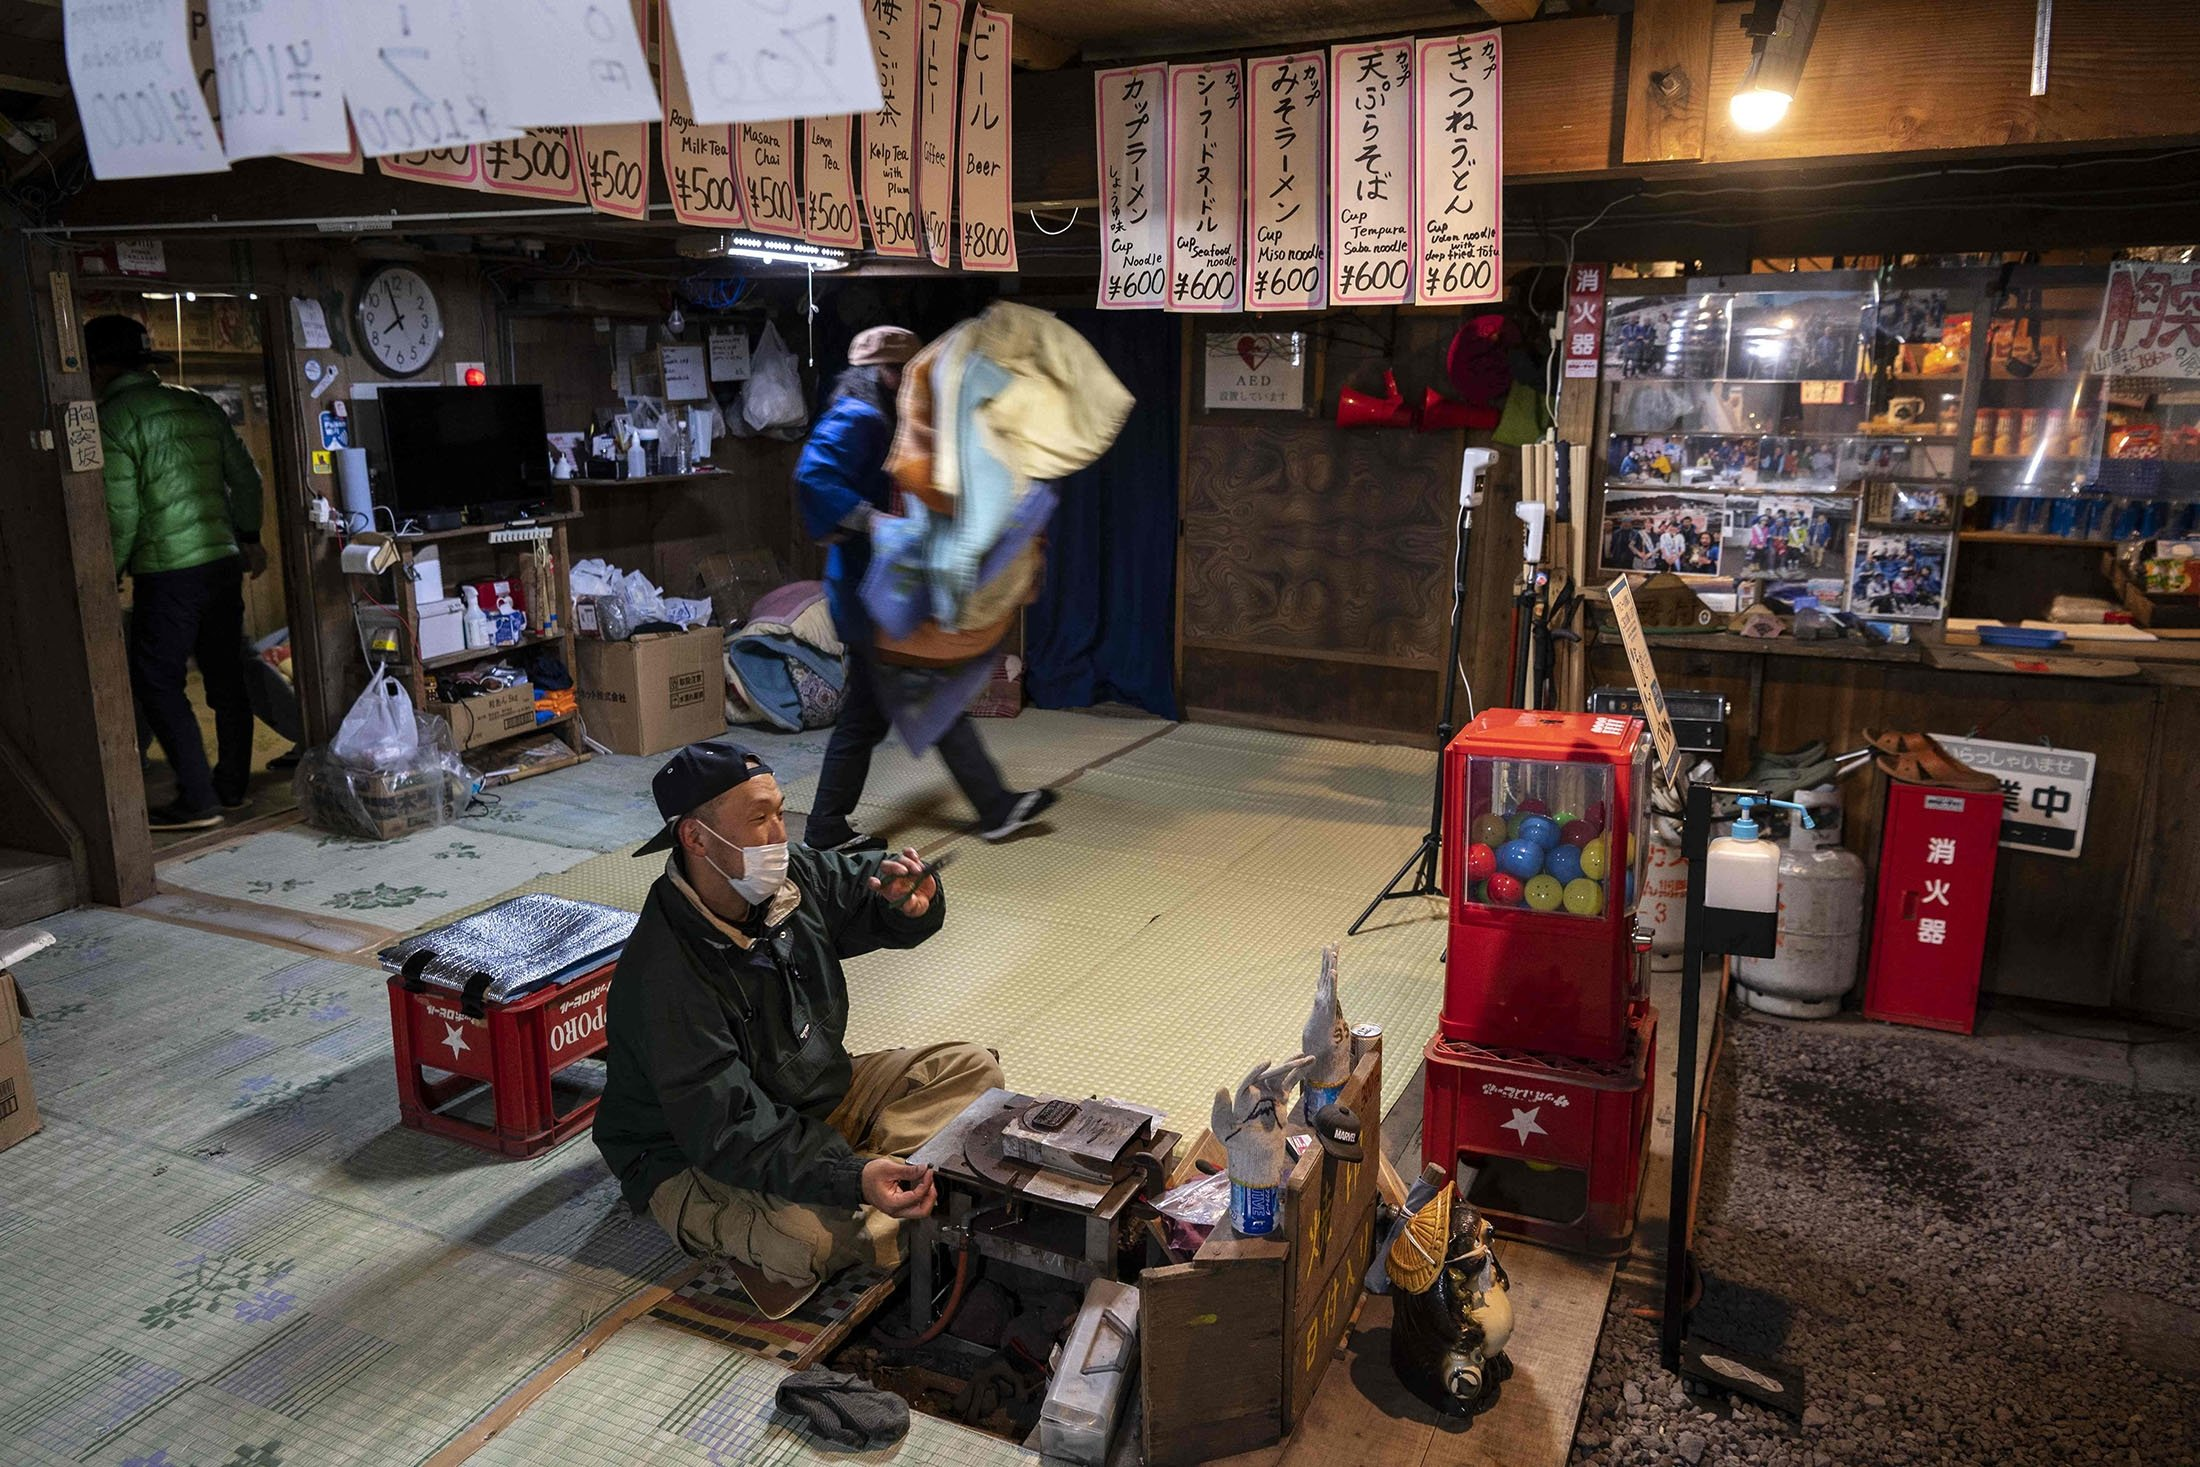 People work inside a hut selling food and other items, near the summit of Mount Fuji, some 70 kilometers (43 miles) west of the capital Tokyo, Japan, July 18, 2021. (AFP Photo)